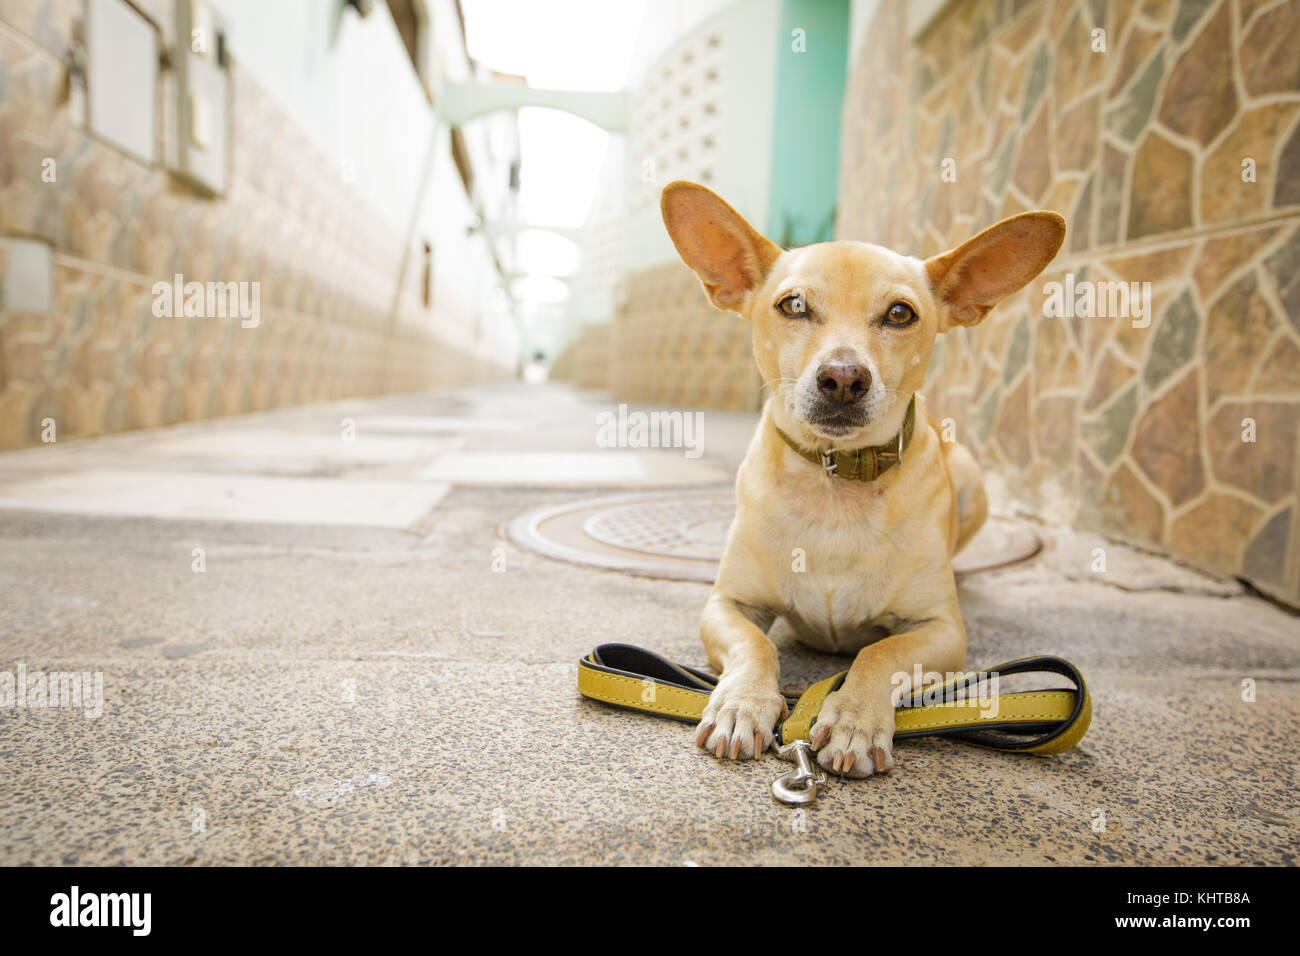 chihuahua dog waiting for owner to play  and go for a walk with leash outdoors - Stock Image